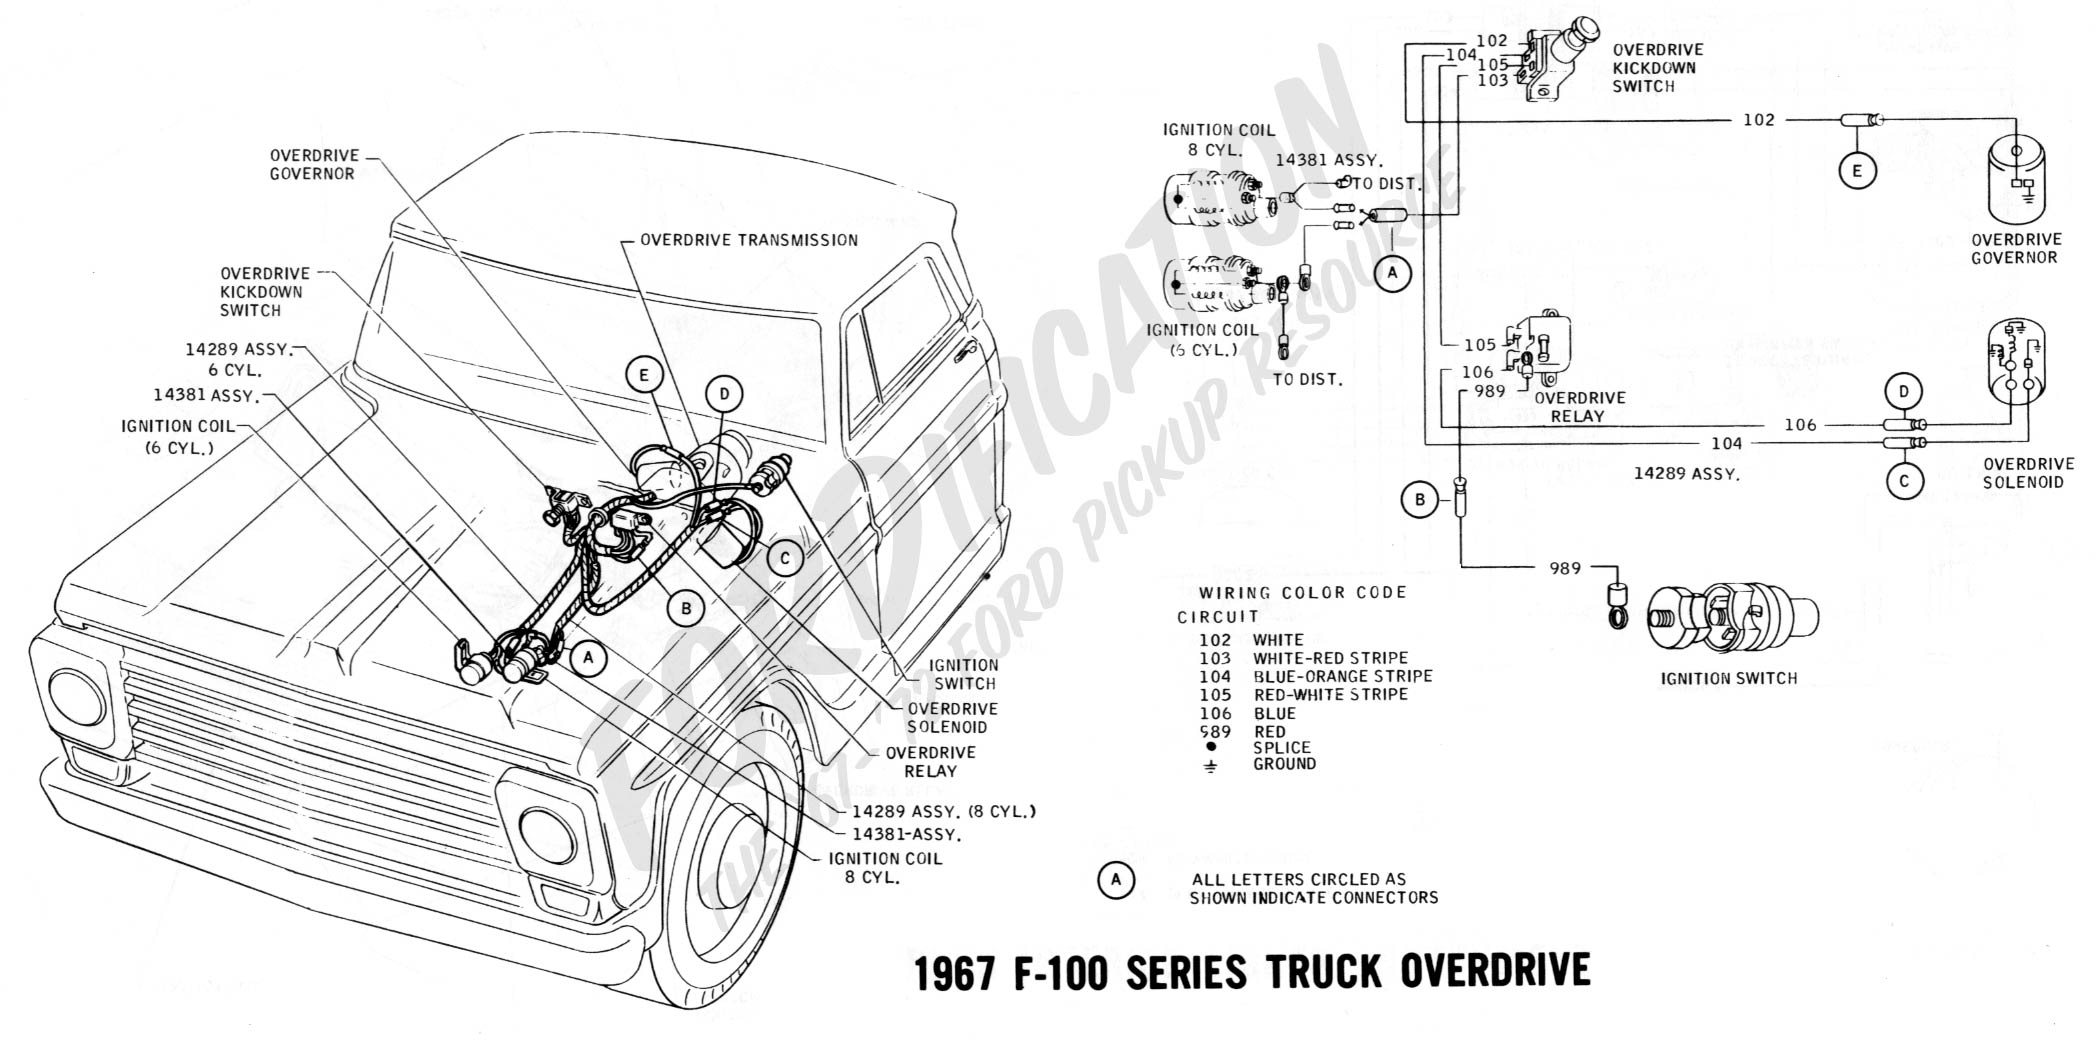 1968 Nova Wiring Diagram Free Picture Schematic Headlight Ford Truck Technical Drawings And Schematics Section H Rh Fordification Com 1963